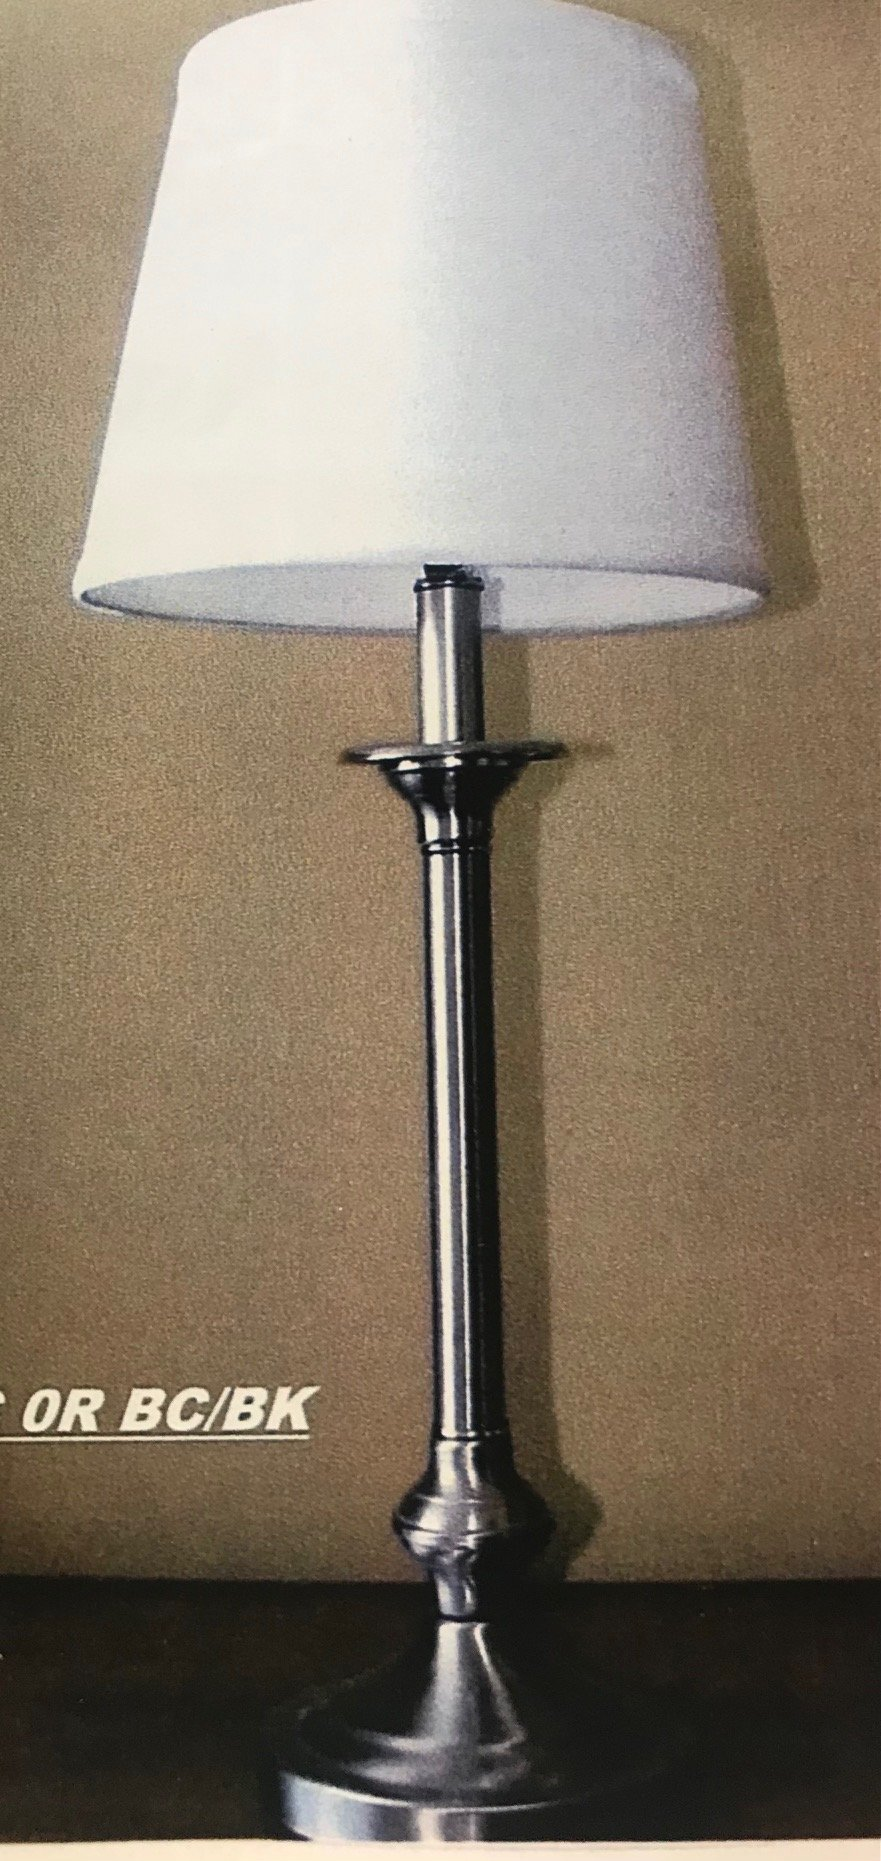 840T Table Lamp Made in Canada Available in Antique Brass,  Brushed Chrome, Black or Antique Bronze Regular Price $162.99 Sale Price $114.99